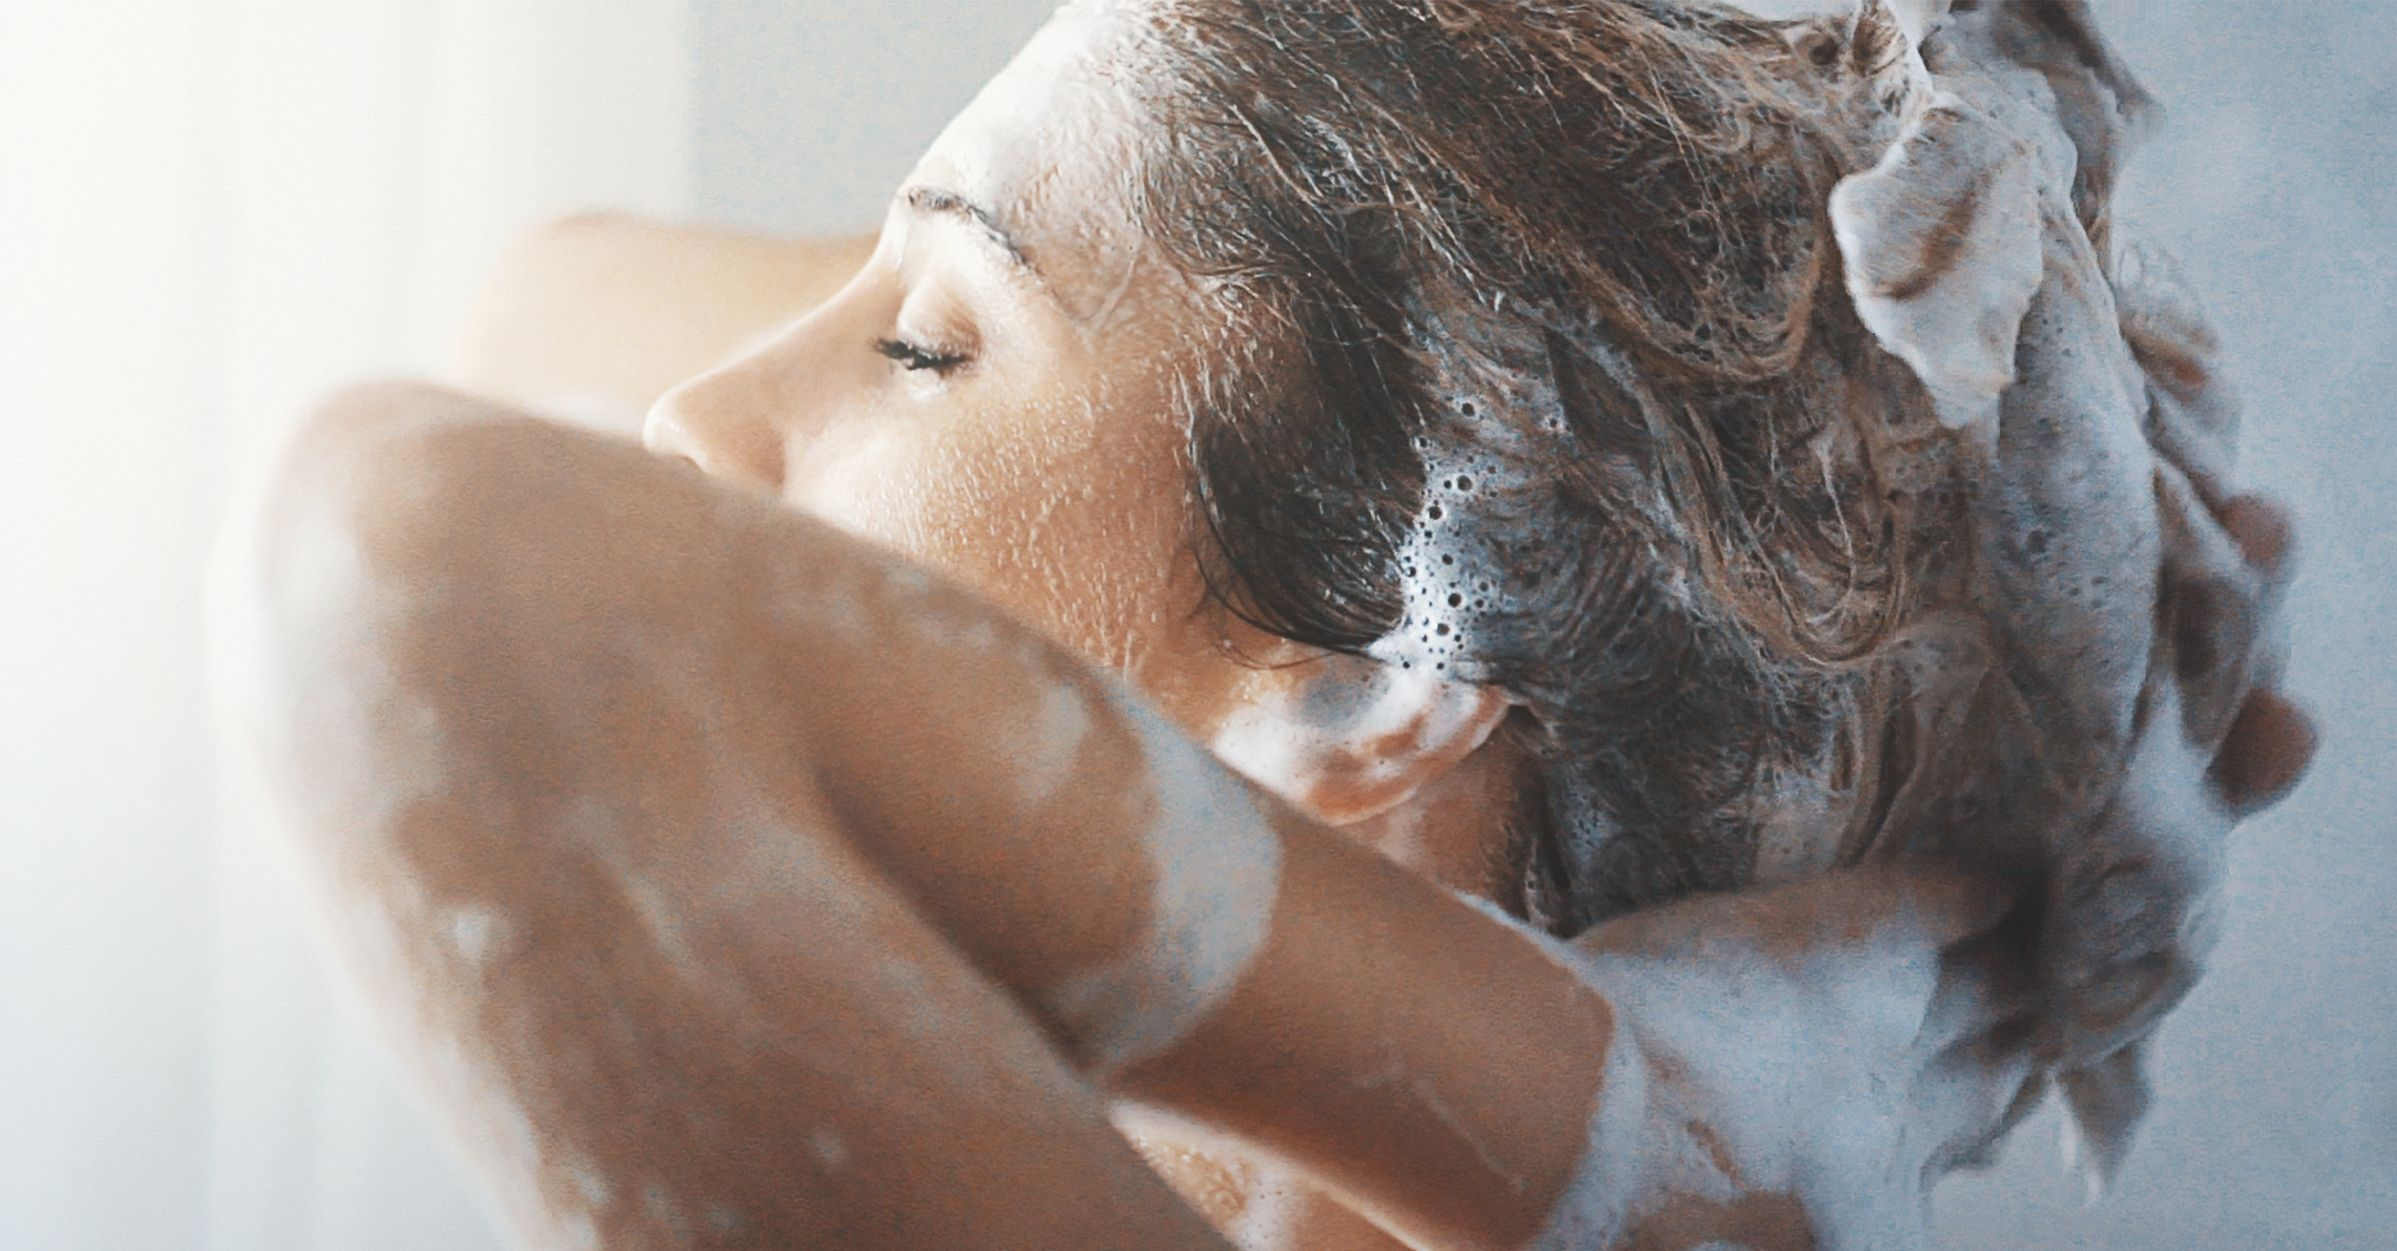 10 Best Dandruff Shampoos to Cleanse a Flaky Scalp, According to Dermatologists